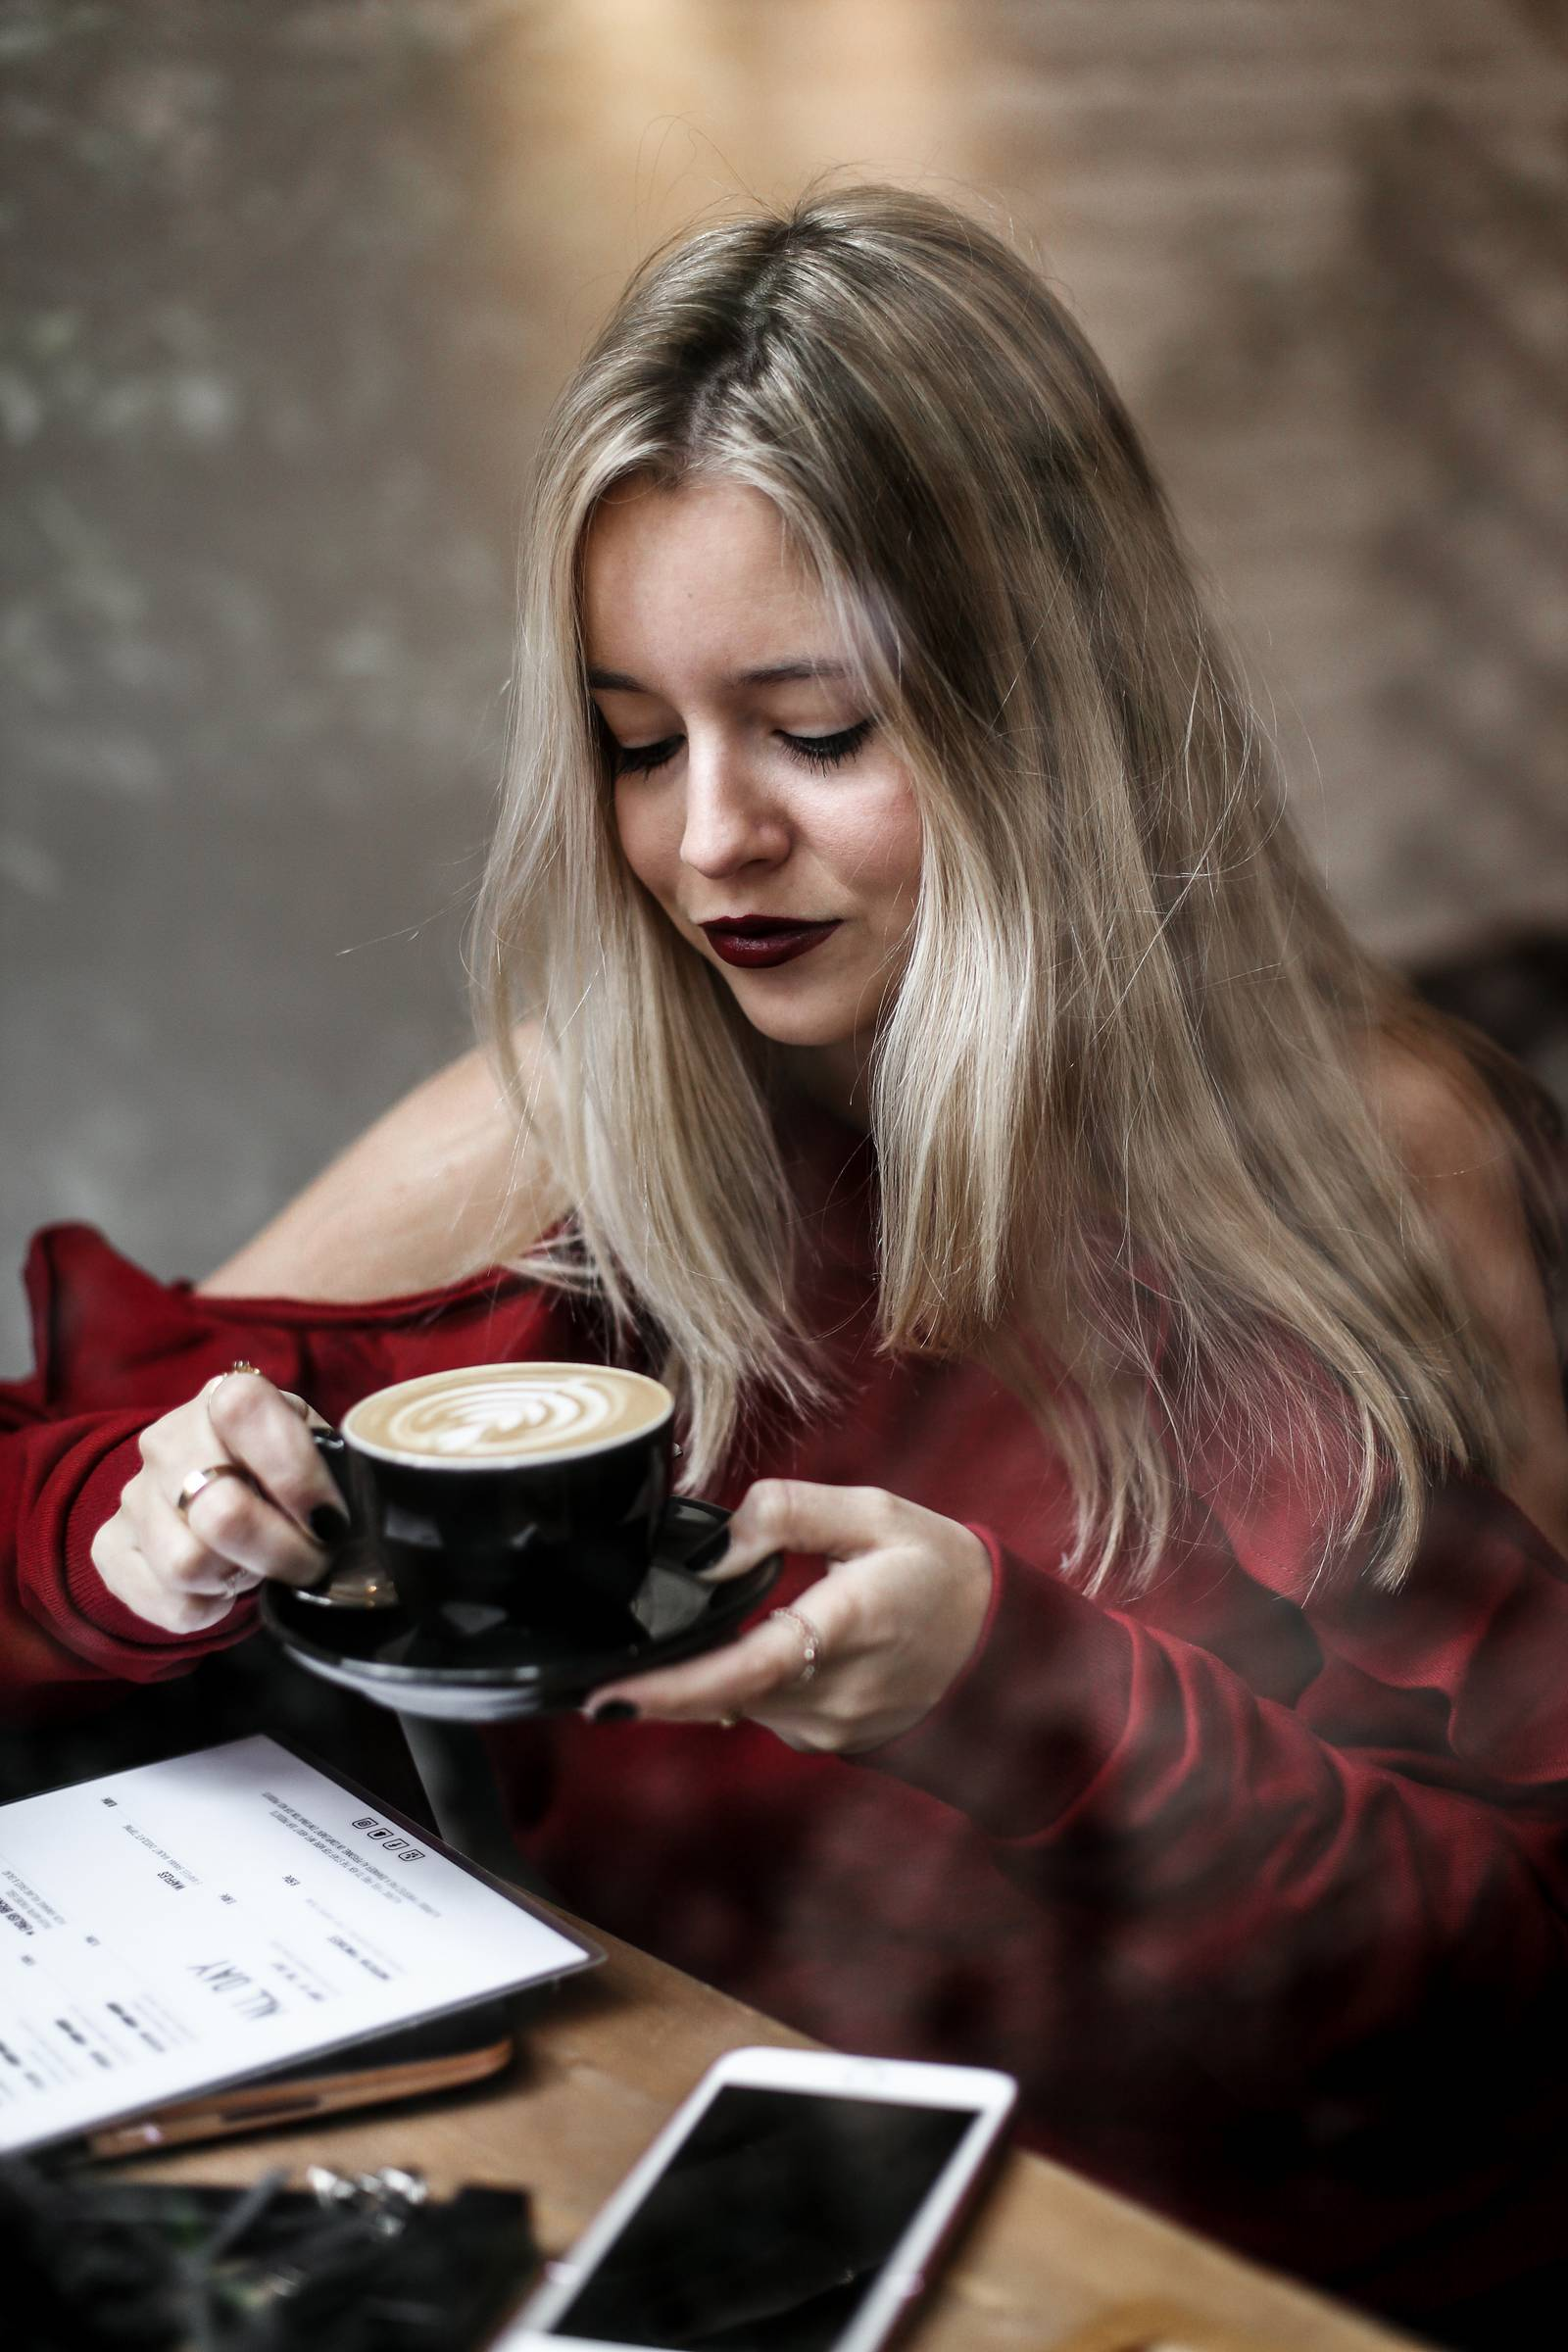 Blond girl, red sweater